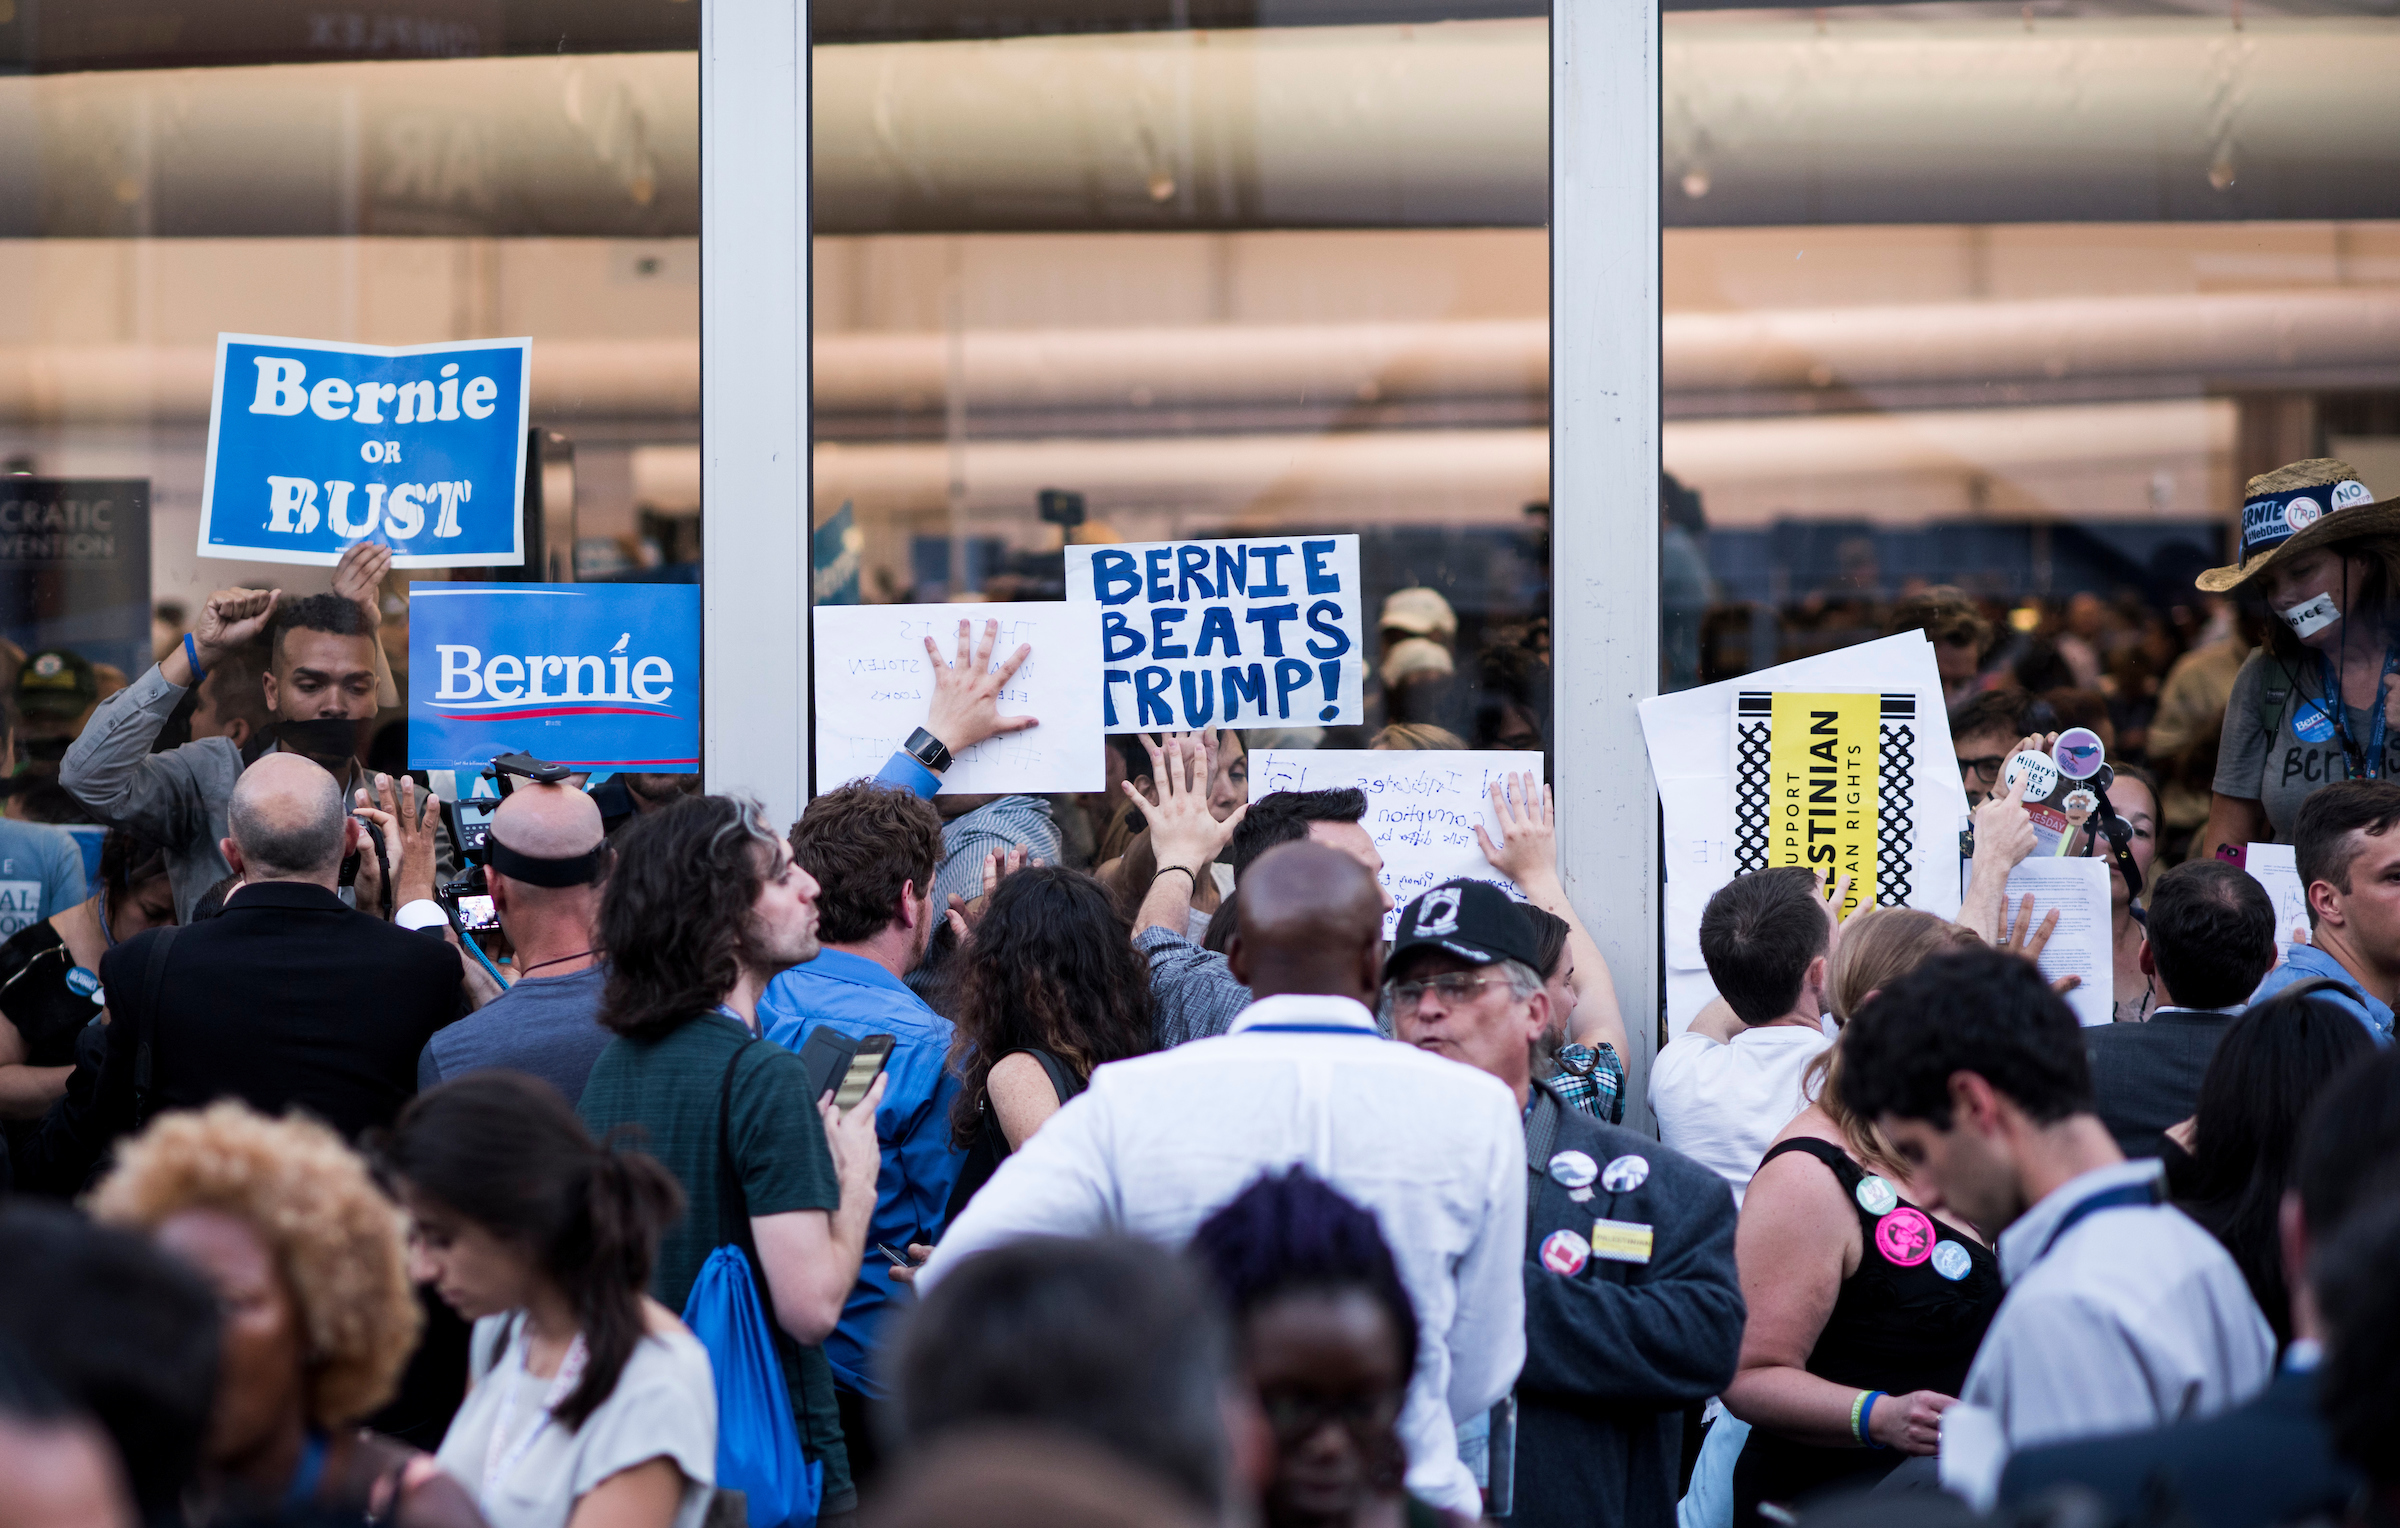 Bernie Sanders delegates and supporters stage a walk out and protest at the media tents outside the Democratic National Convention in Philadelphia on Tuesday, July 26, 2016. (Bill Clark/CQ Roll Call)